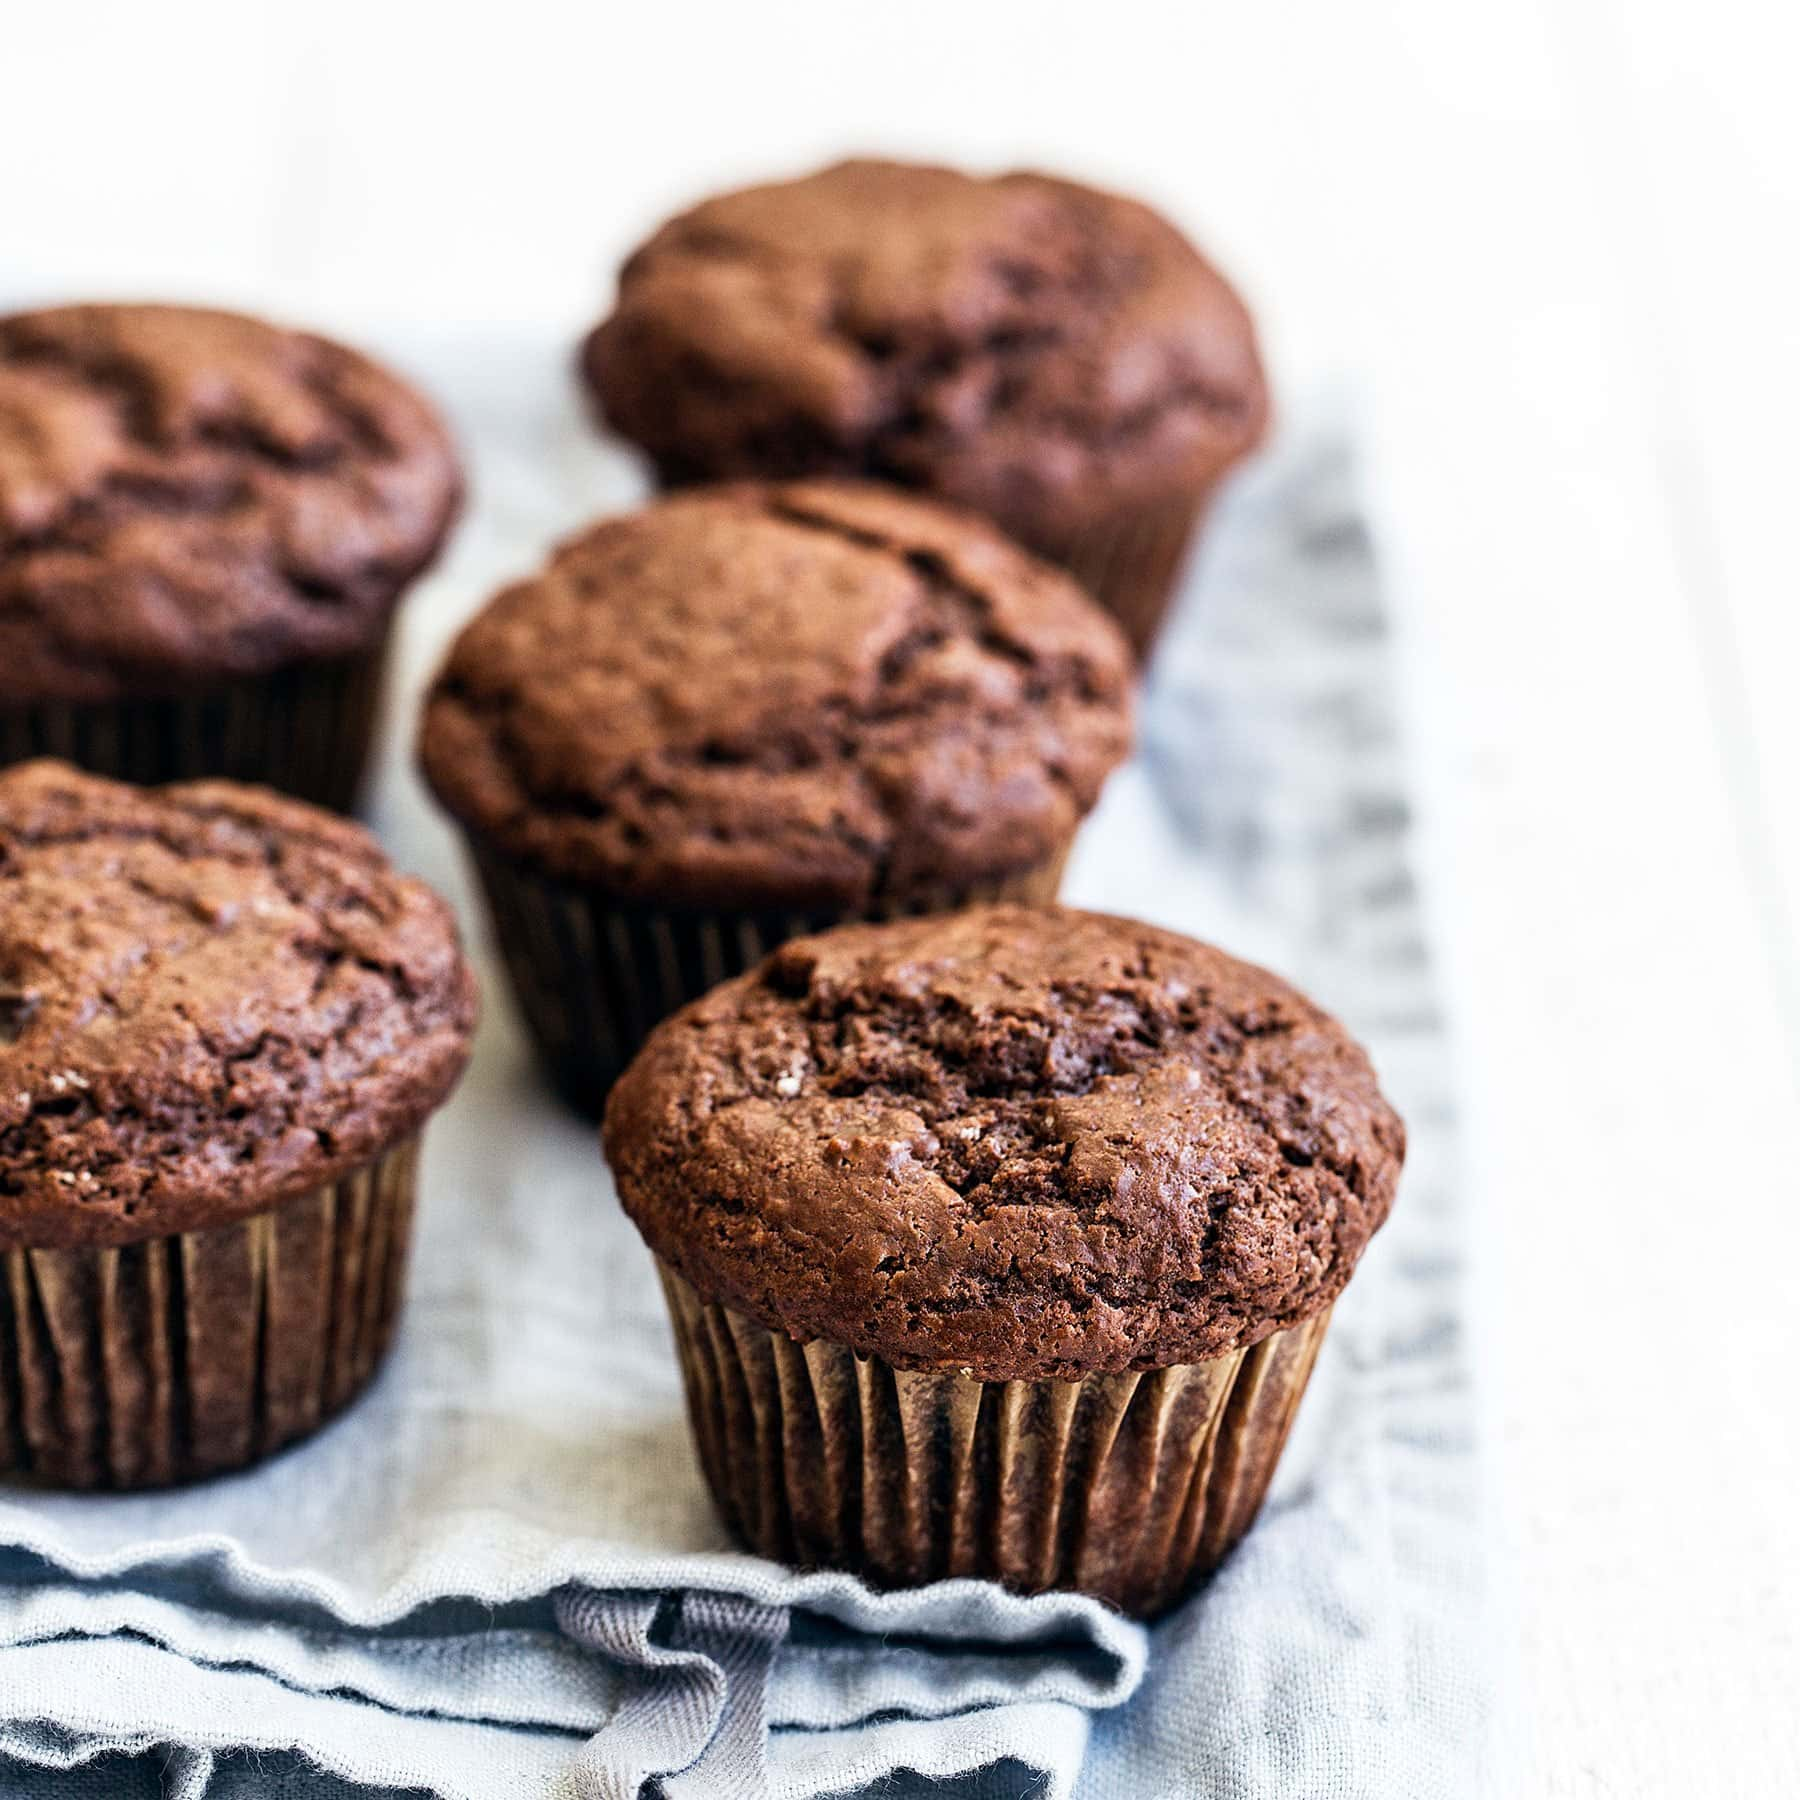 Moist and tender Double Chocolate Muffins feature a brown sugar cocoa muffin studded with gooey chocolate chunks for the ultimate easy treat!